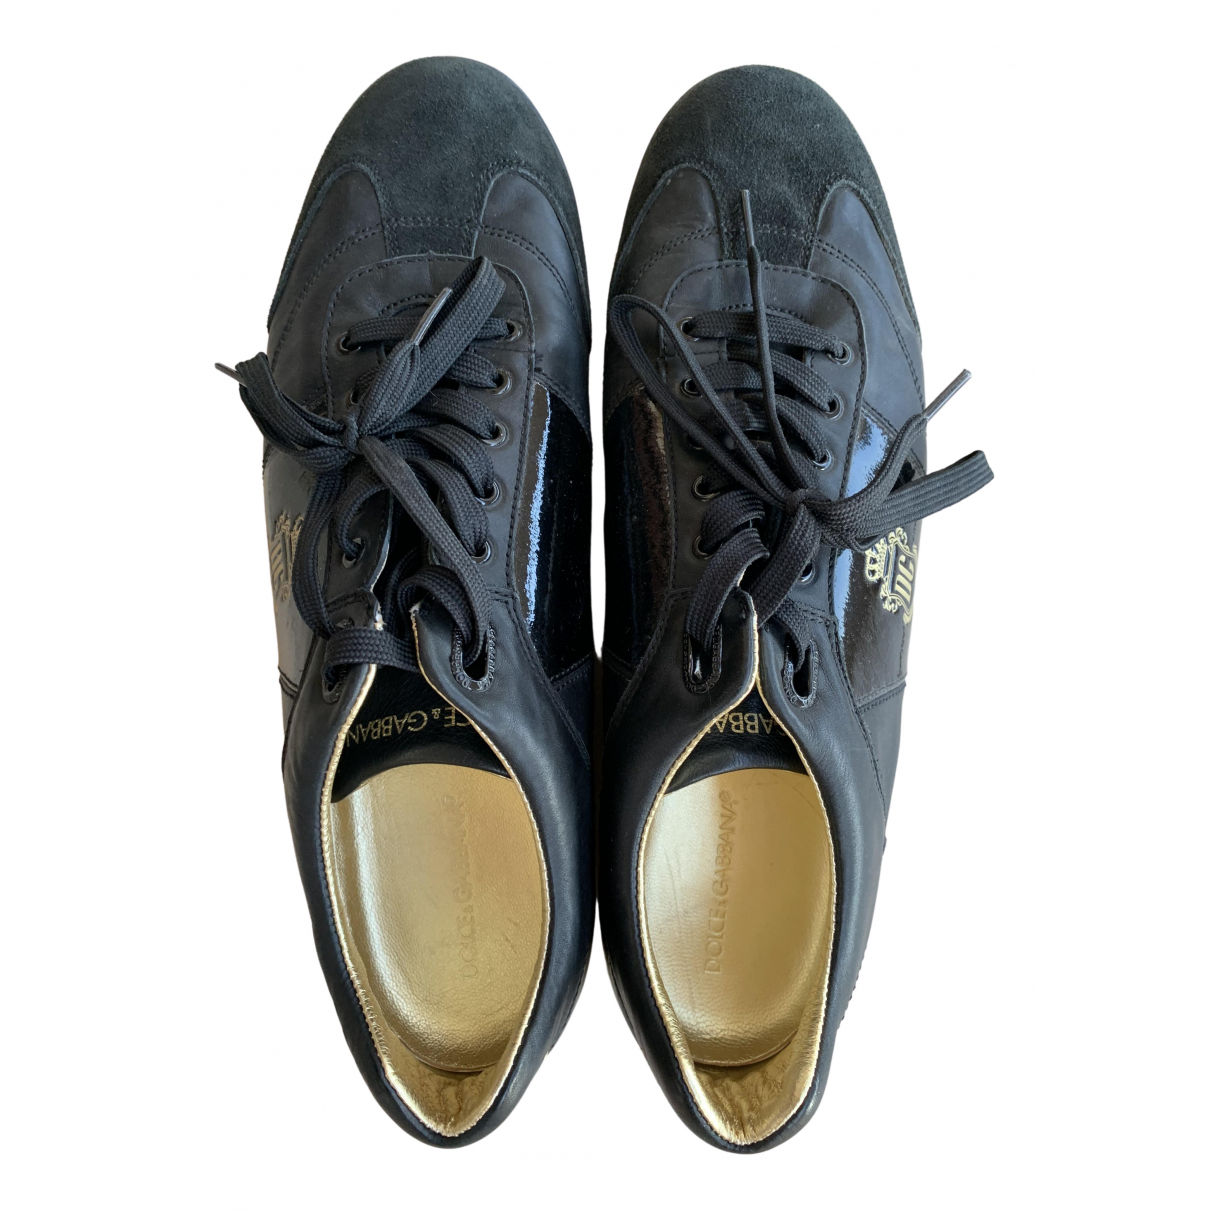 Dolce & Gabbana \N Black Patent leather Trainers for Men 45 EU